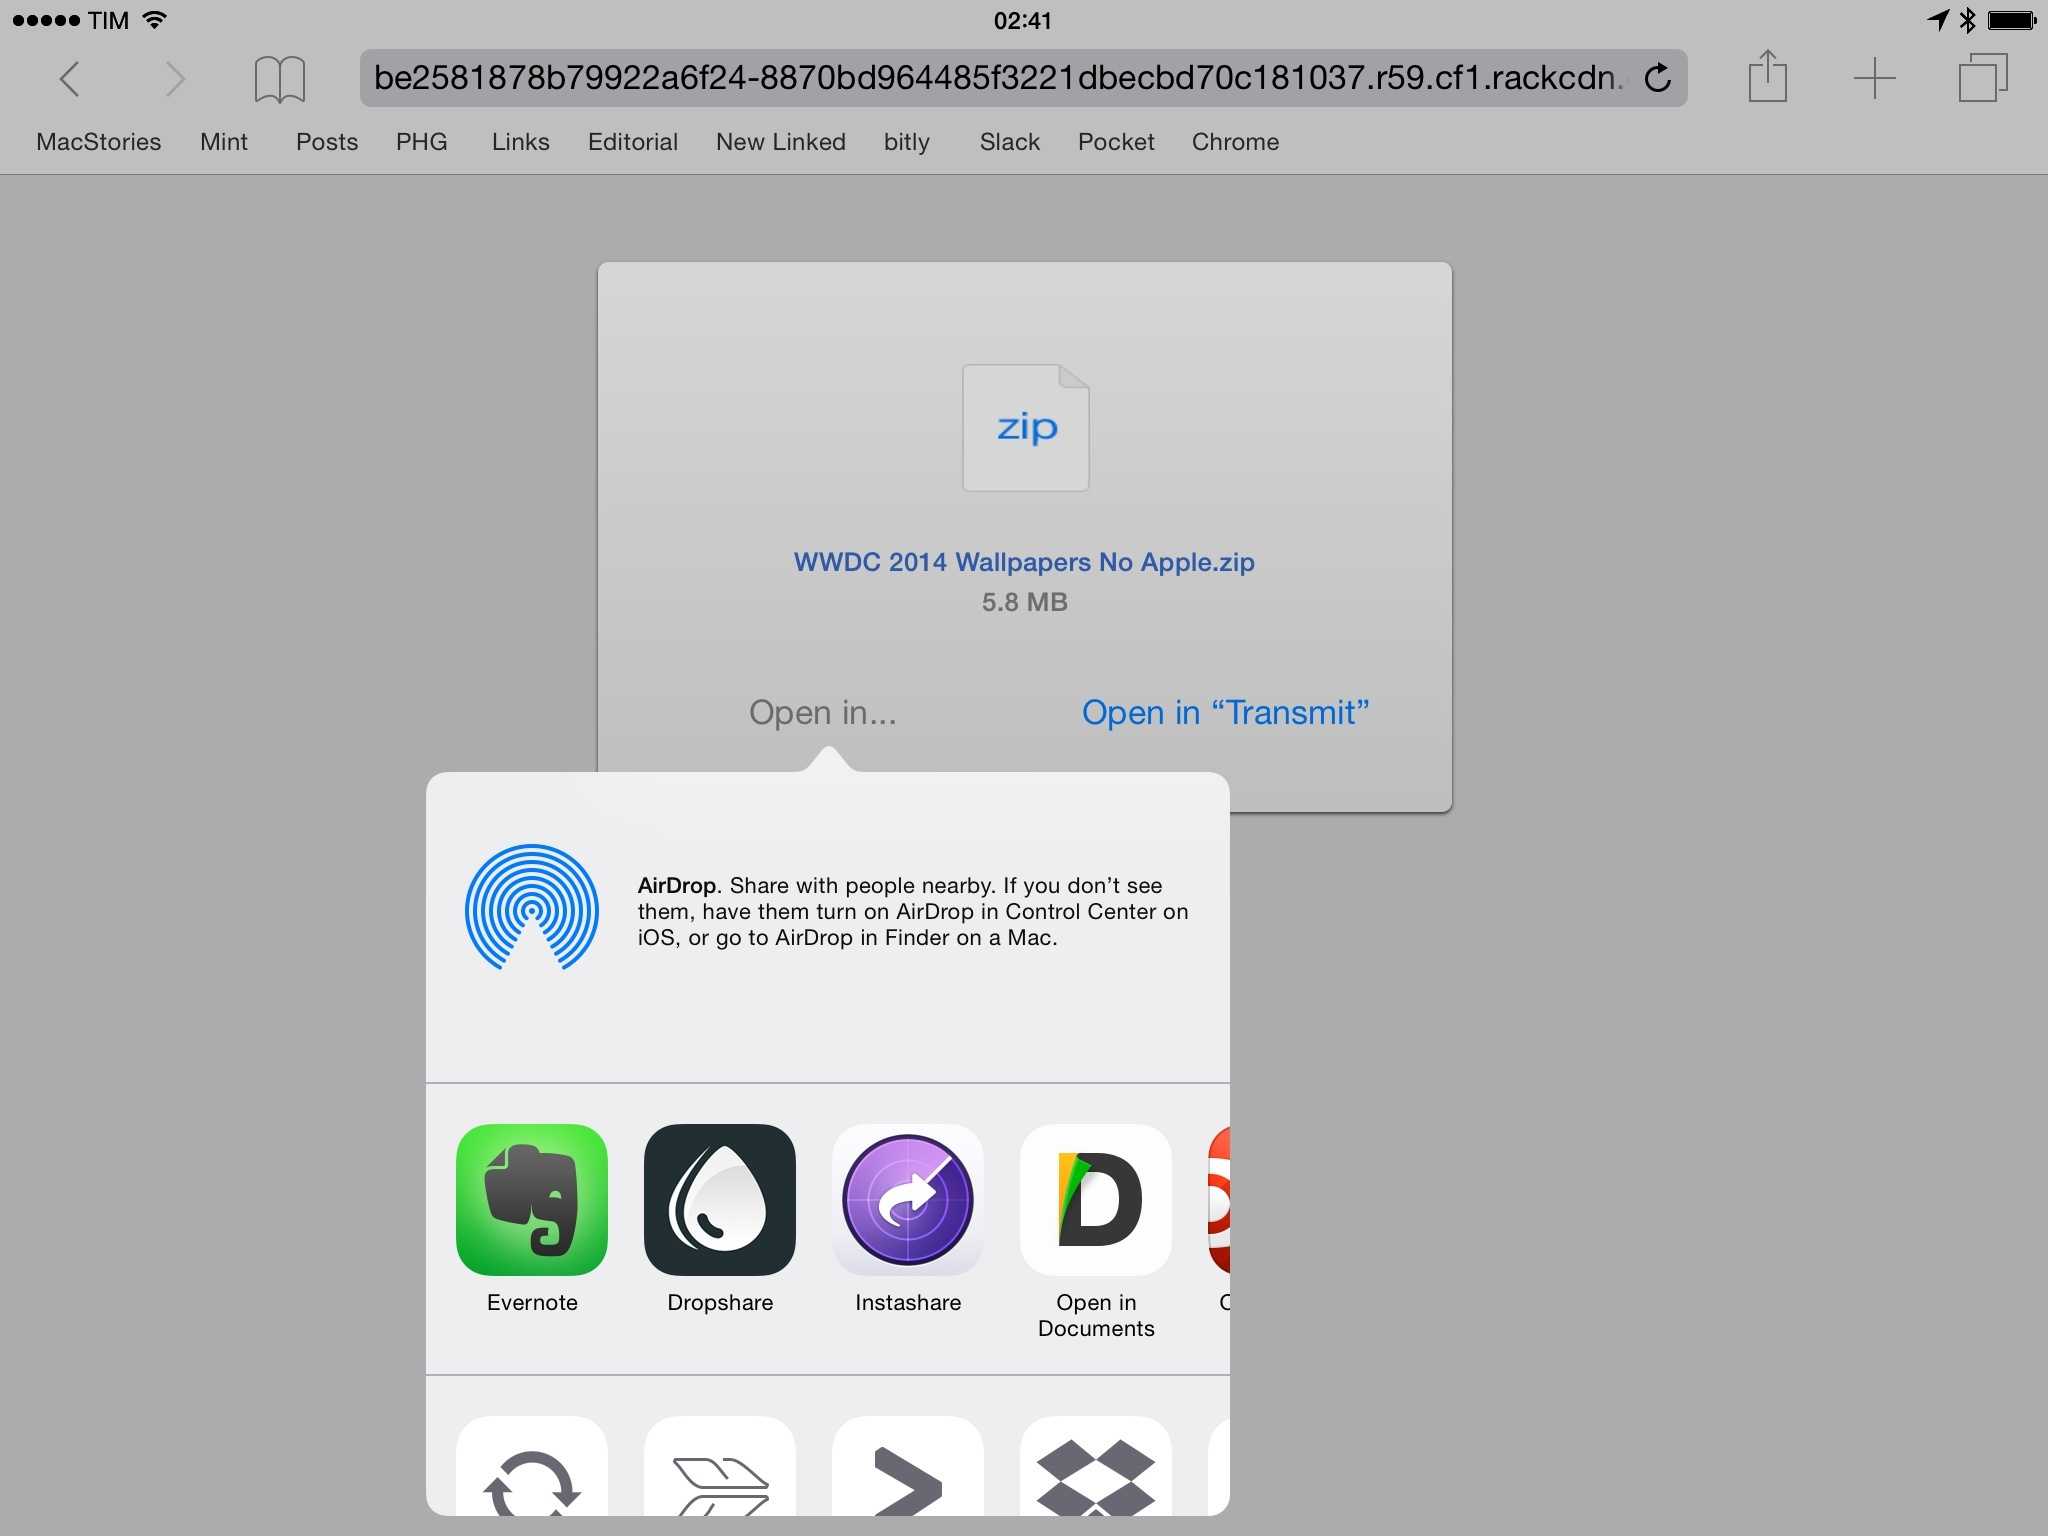 Safari's download interface. Extensions can be run for files.